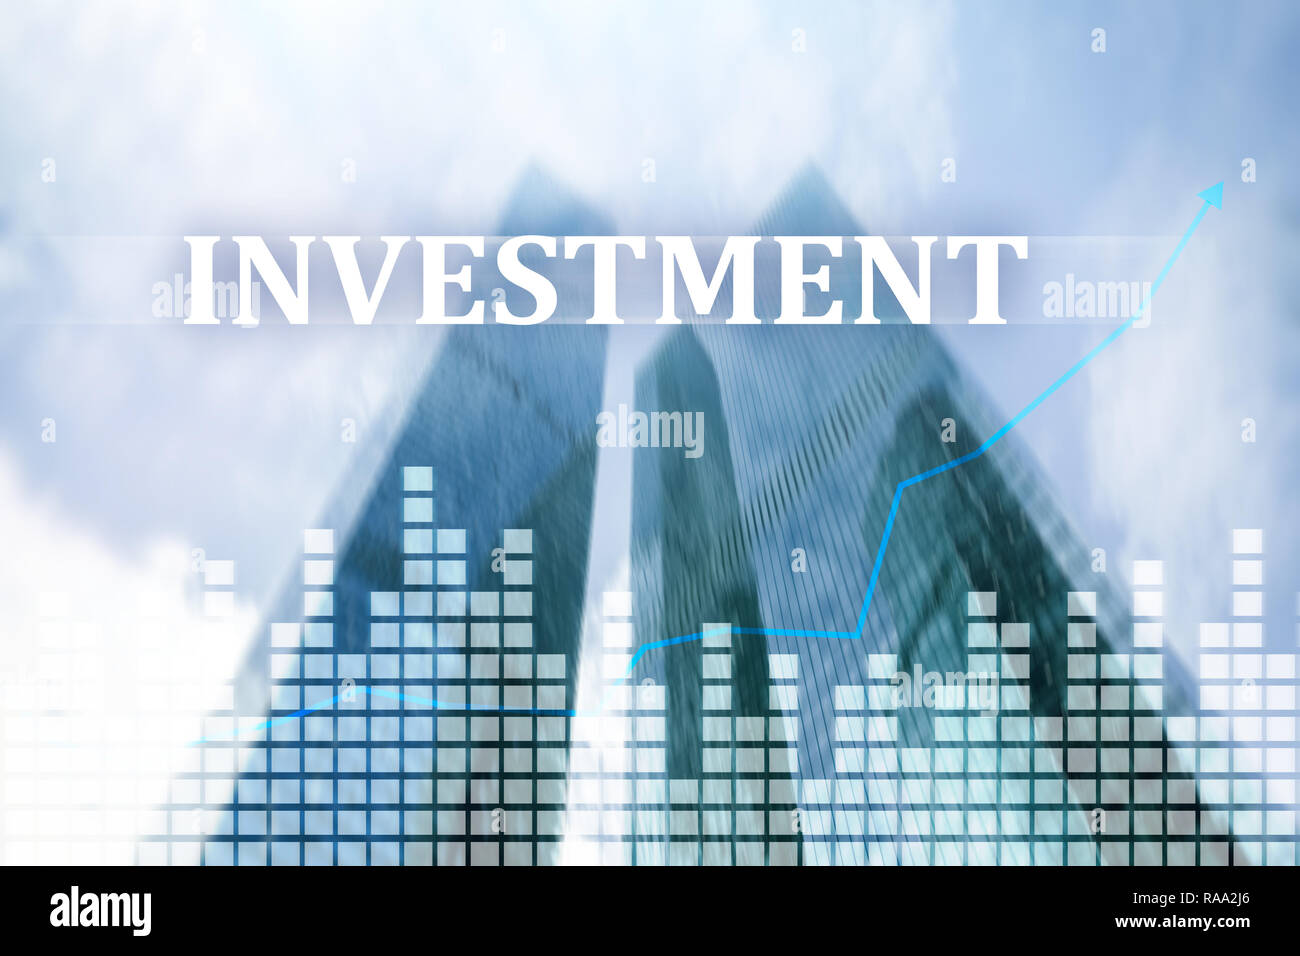 Investment, ROI, financial market concept. City concept. - Stock Image